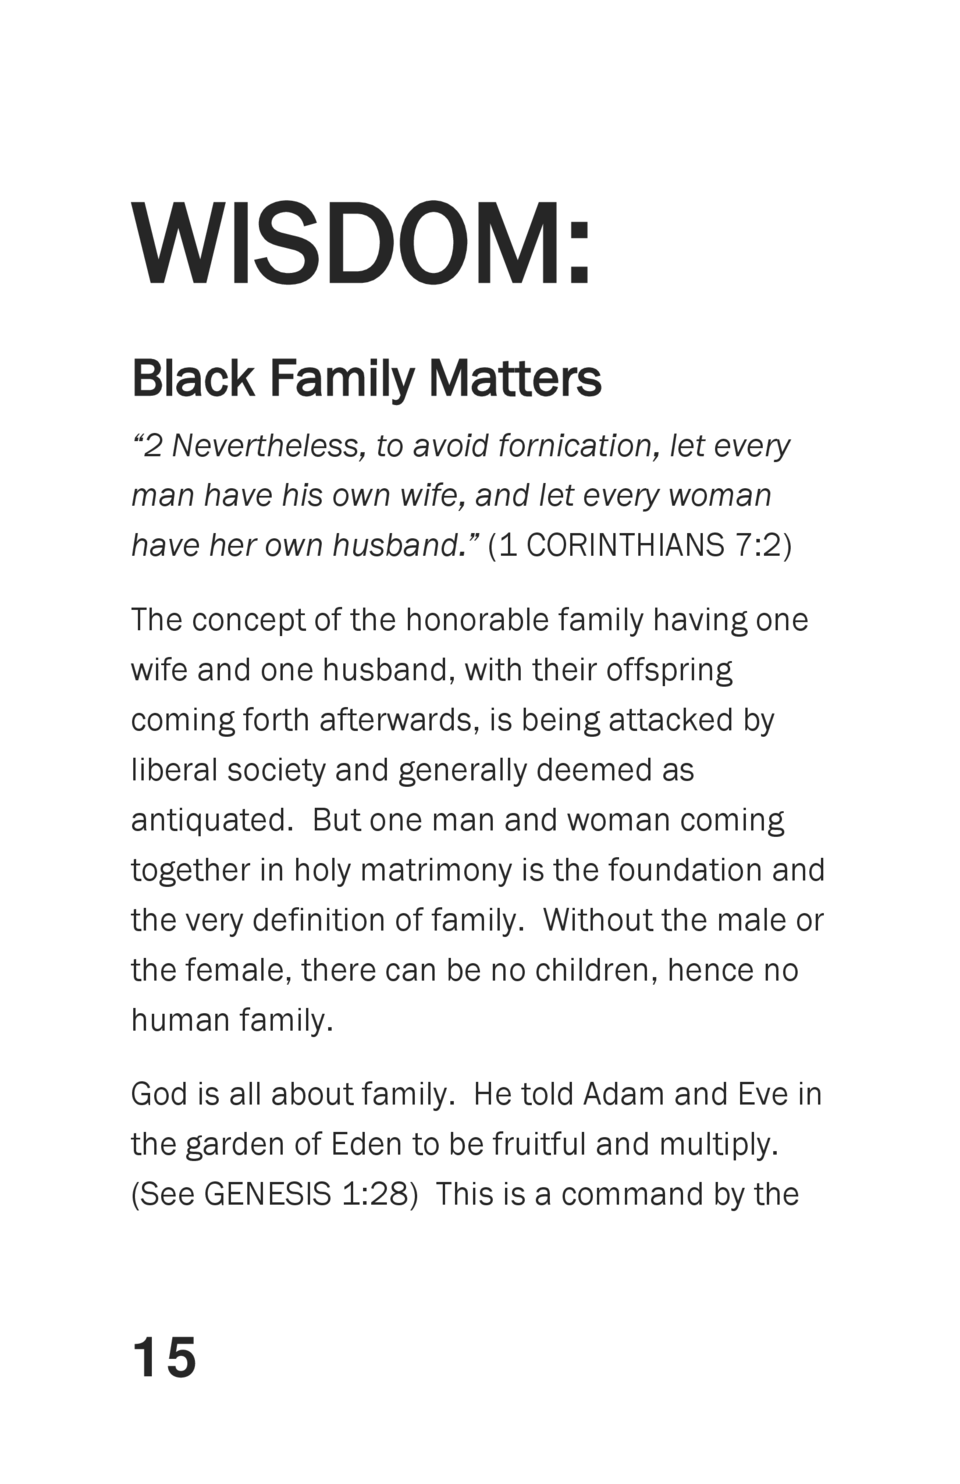 WISDOM  Black Family Matters    2 Nevertheless, to avoid fornication, let every man have his own wife, and let every woman...